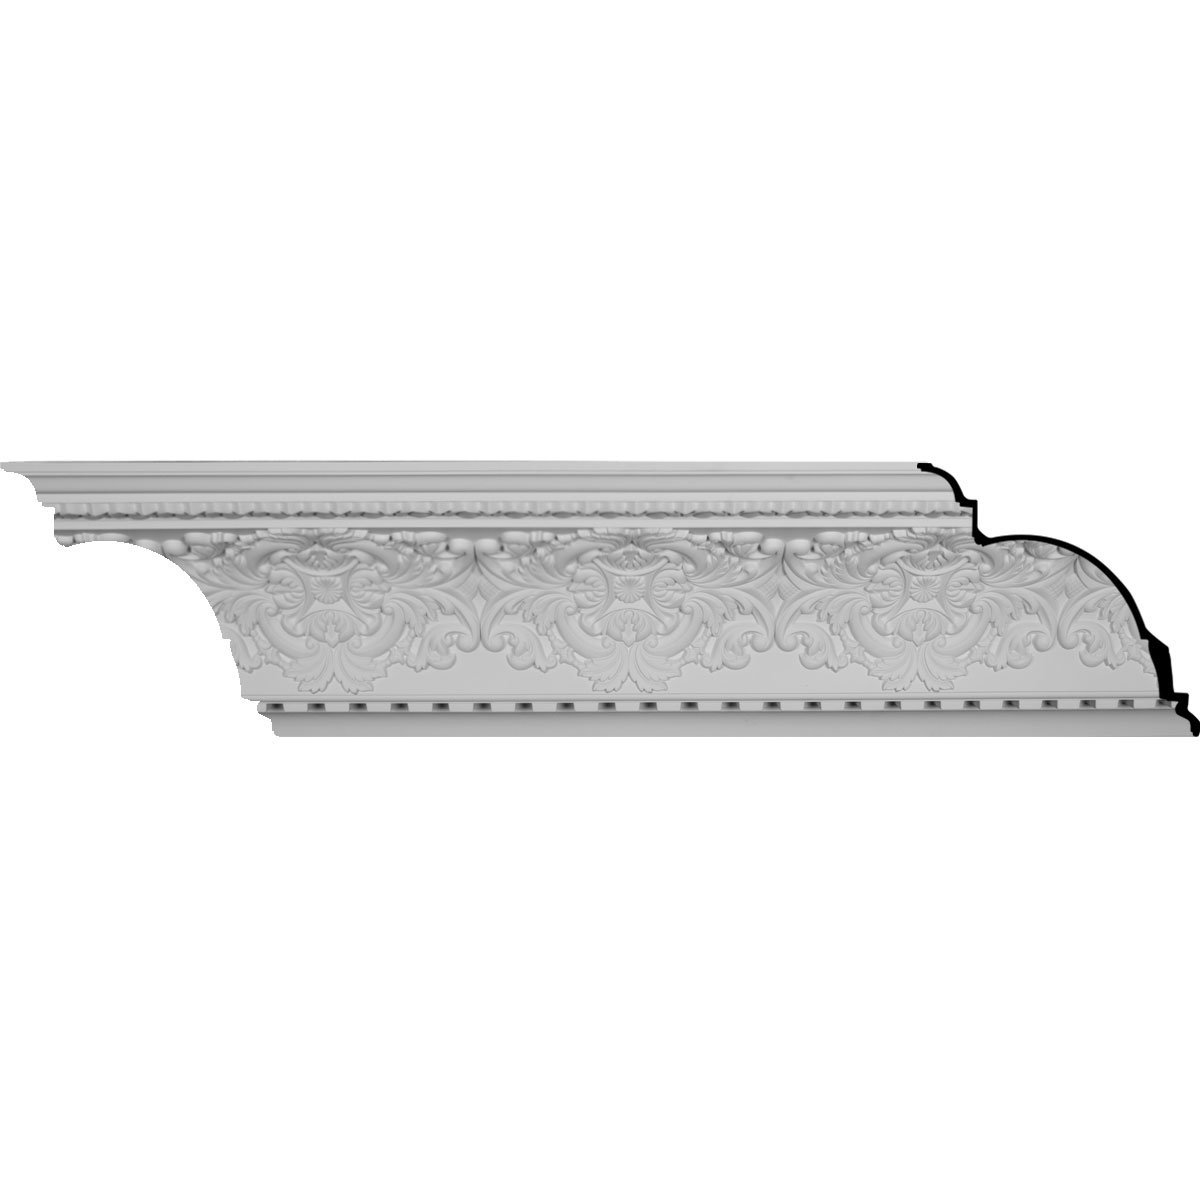 Ekena Millwork MLD17X16X23NO-CASE-12 17-3/4'' H x 16-1/8'' P x 23-7/8'' F x 95-7/8'' L Norwich Crown Molding with 16-3/8'' Repeat (12-Pack)